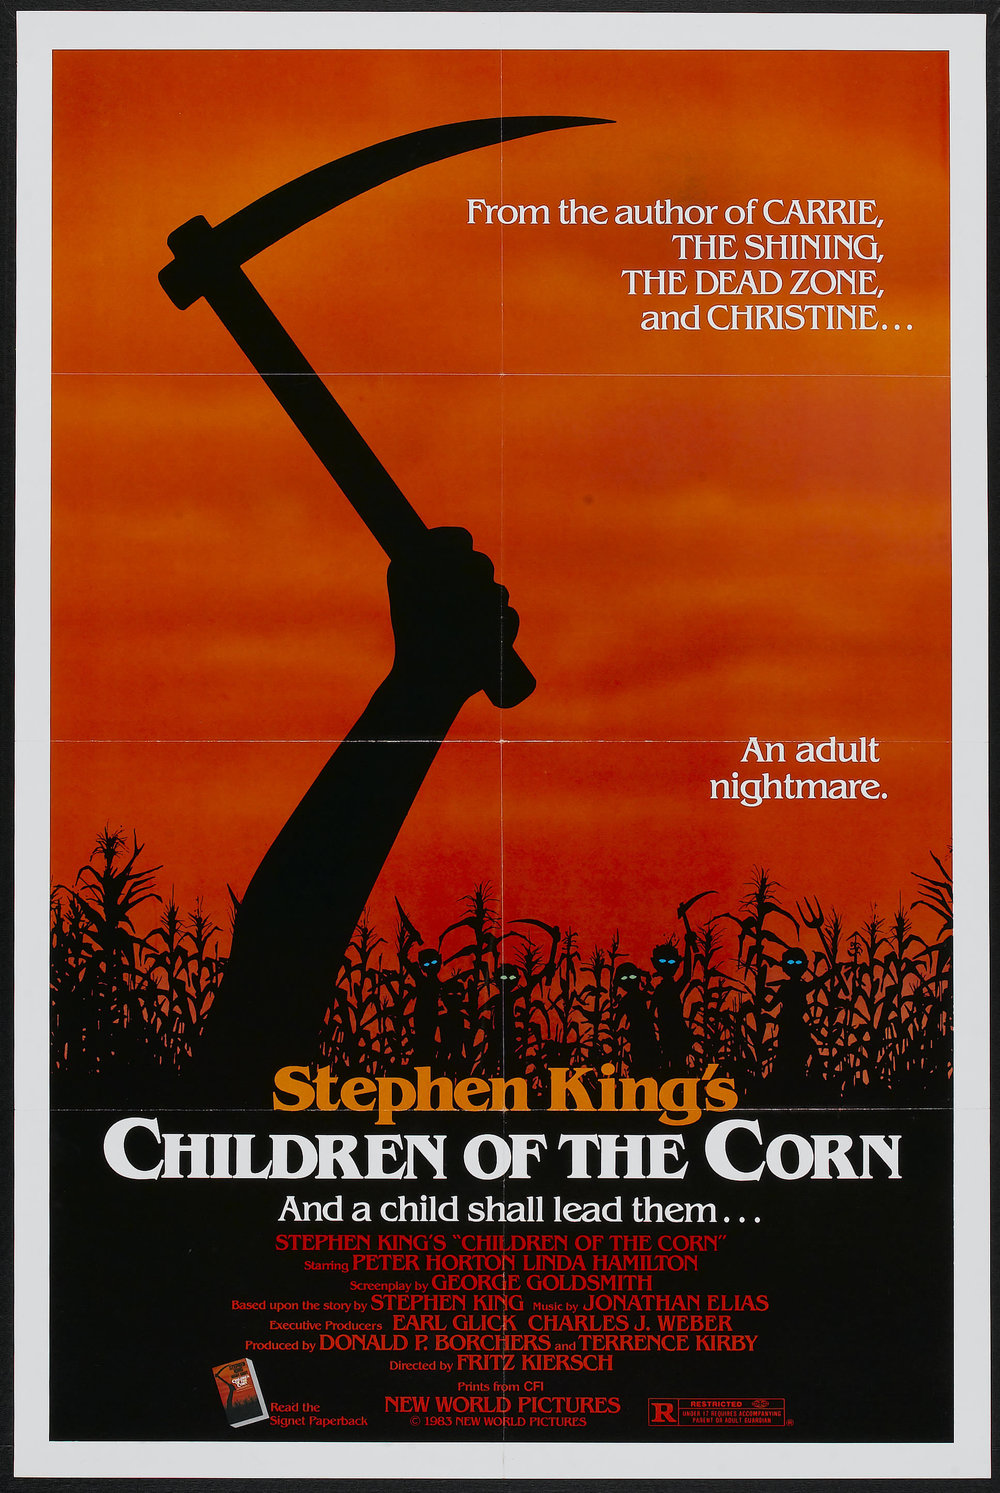 children_of_the_corn_poster_01.jpg